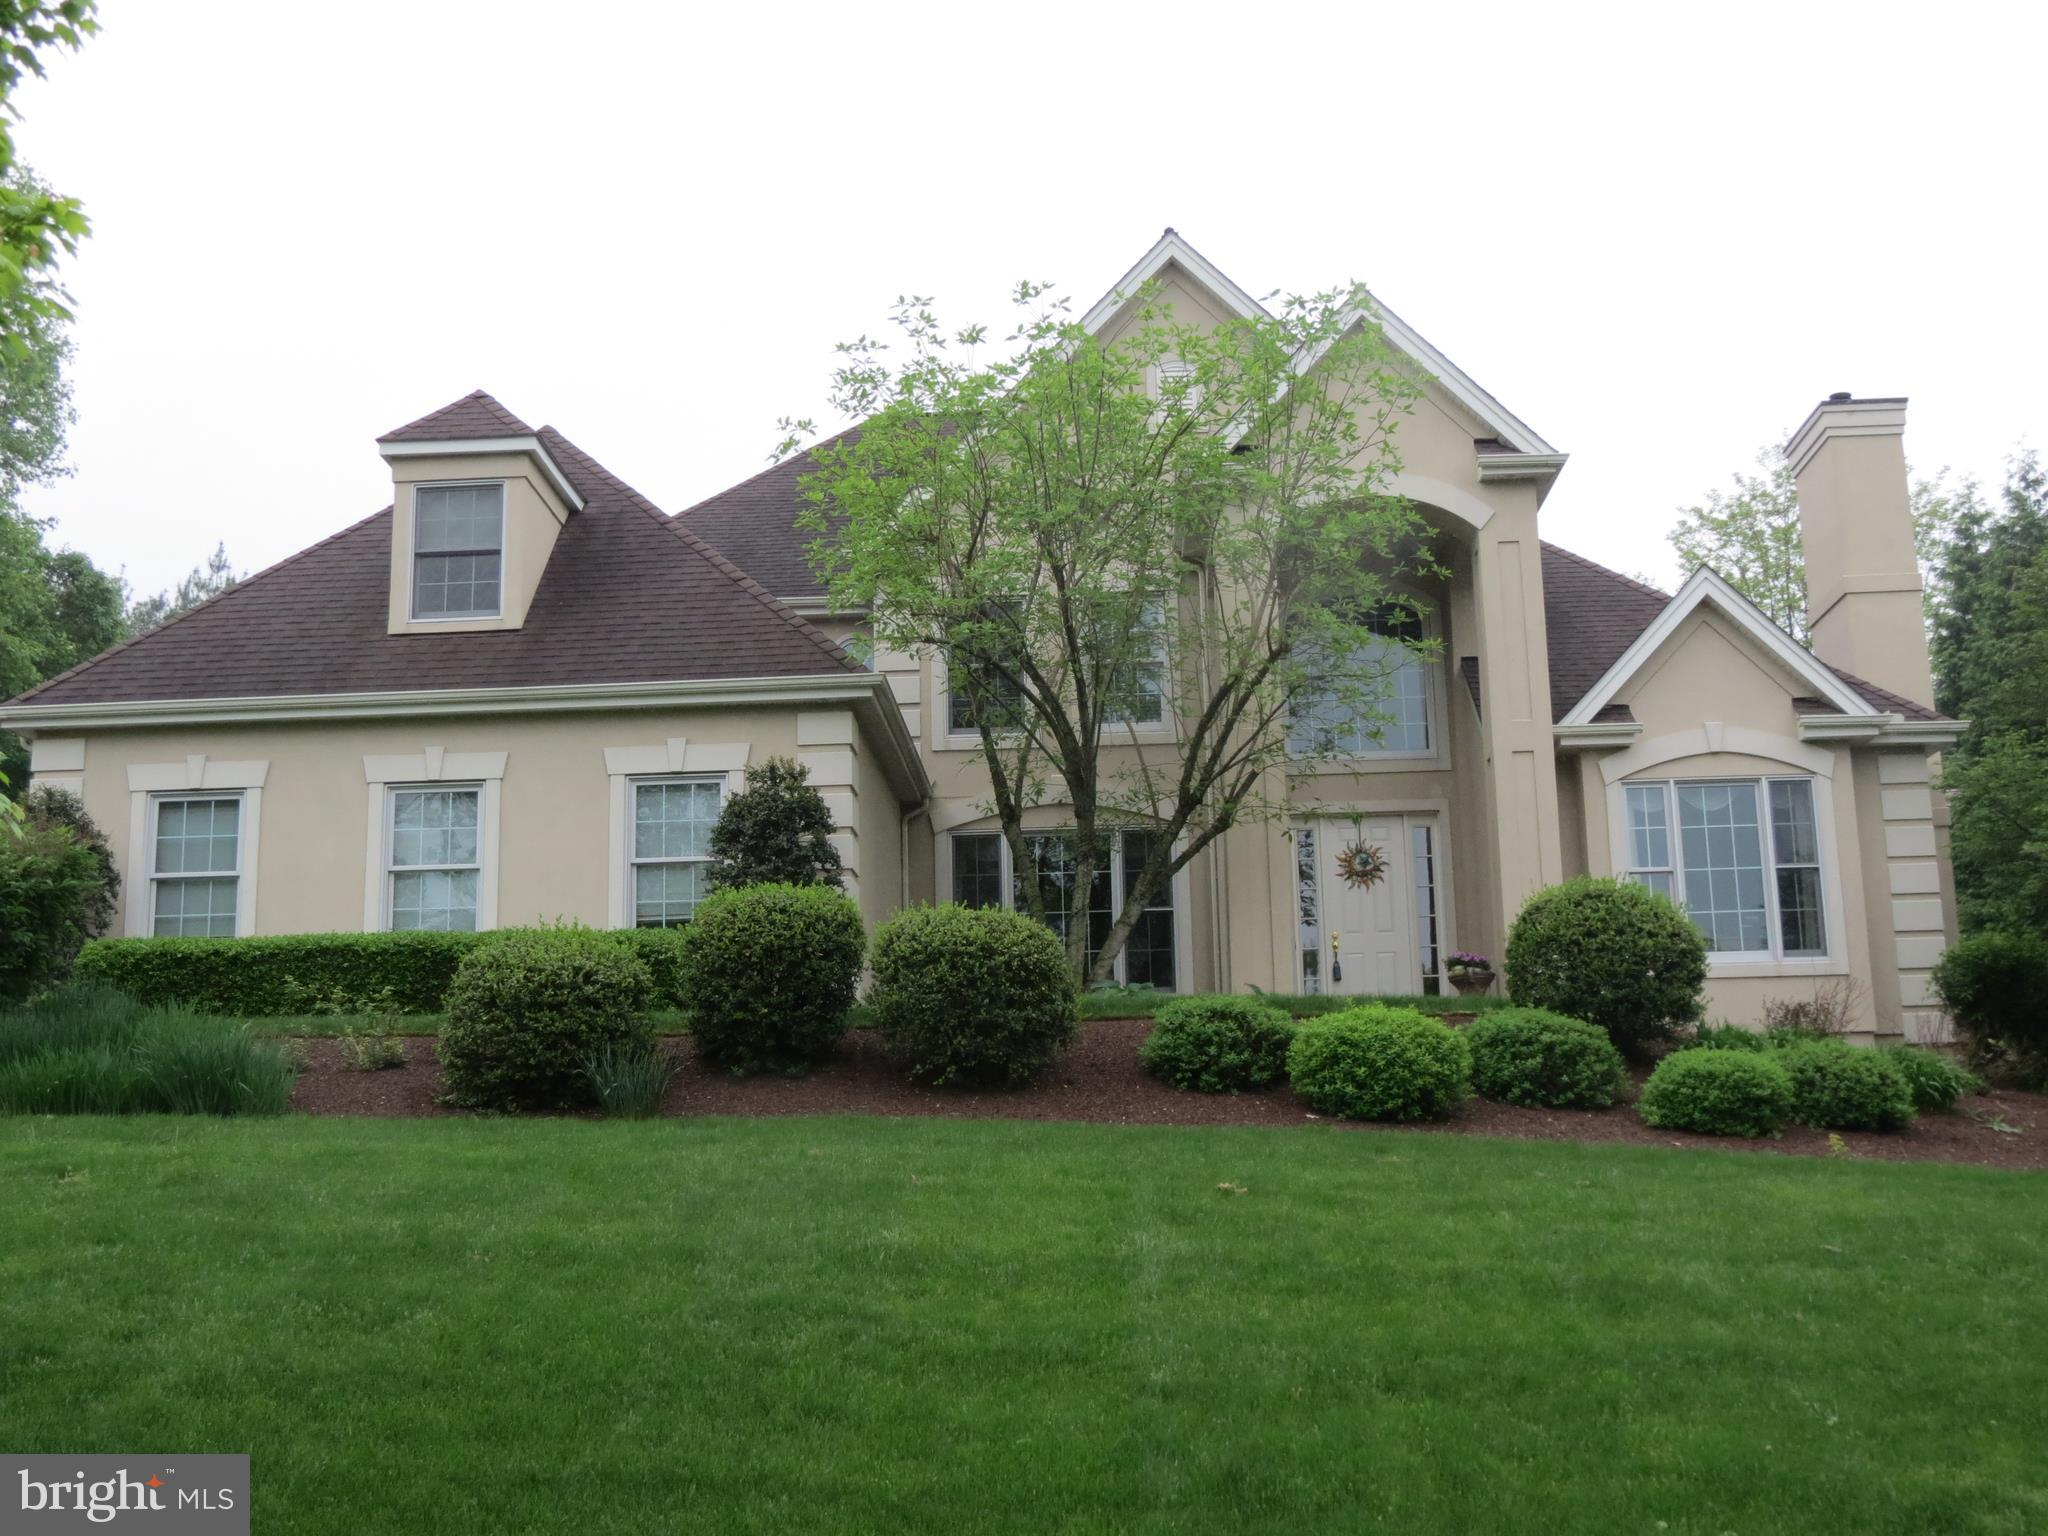 1011 PEGGY DRIVE, HUMMELSTOWN, PA 17036